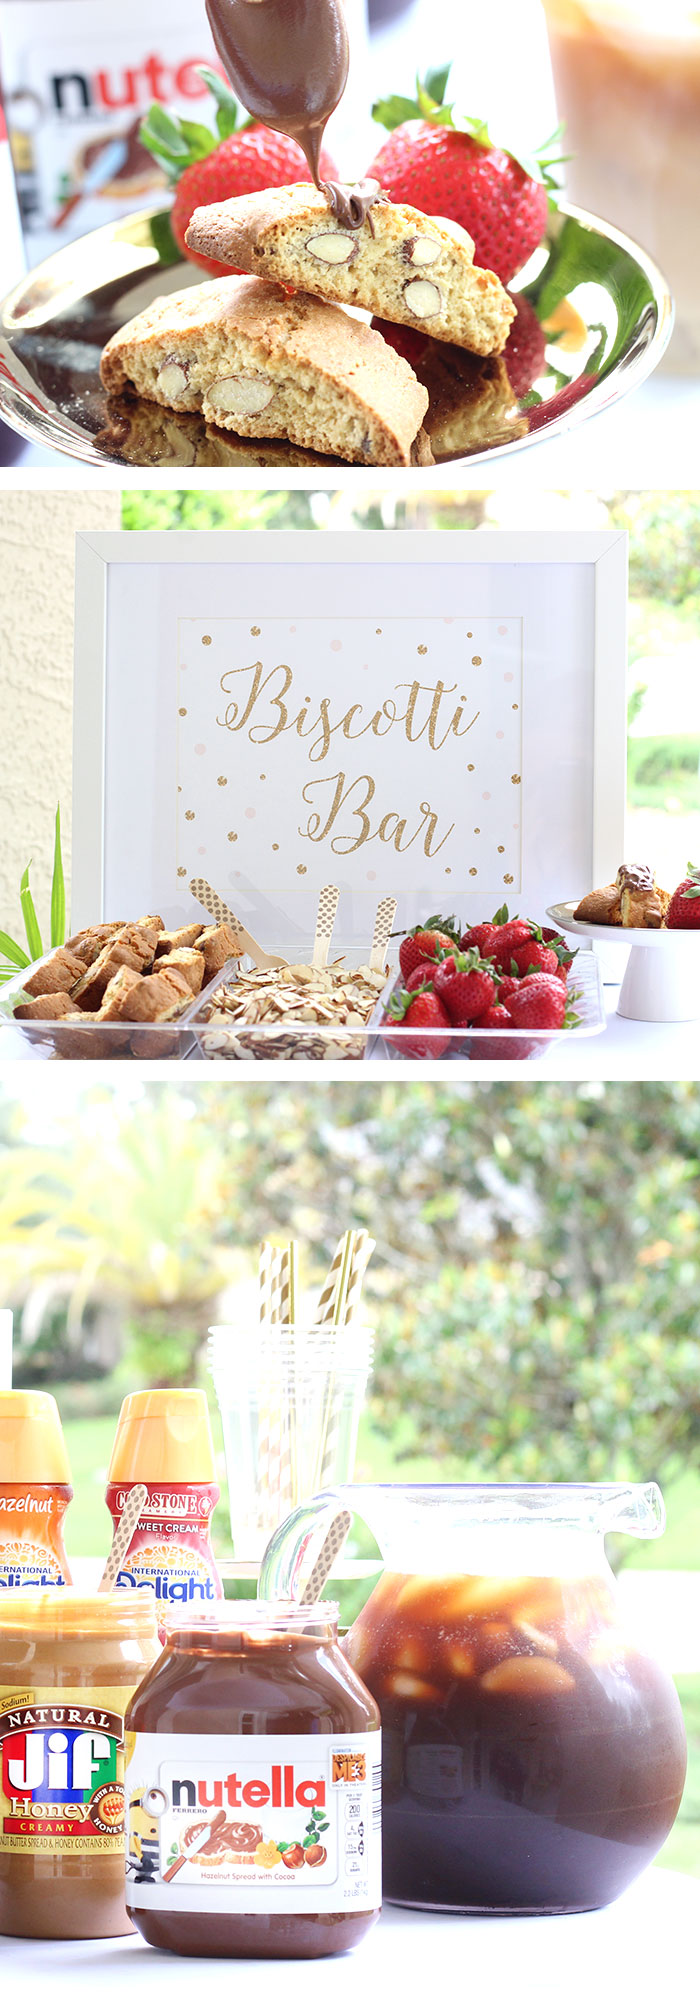 Biscotti Bar. Bored with the same old, too? Check out these savvy biscotti bar ideas with iced coffee fixings too.